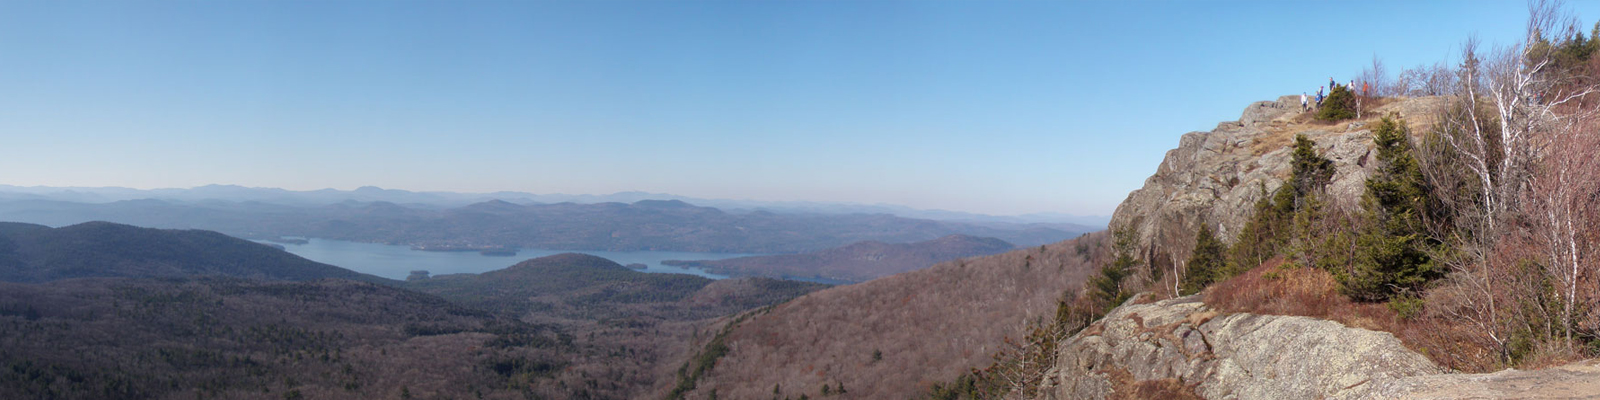 Panoramic view of Lake George and surrounding mountains